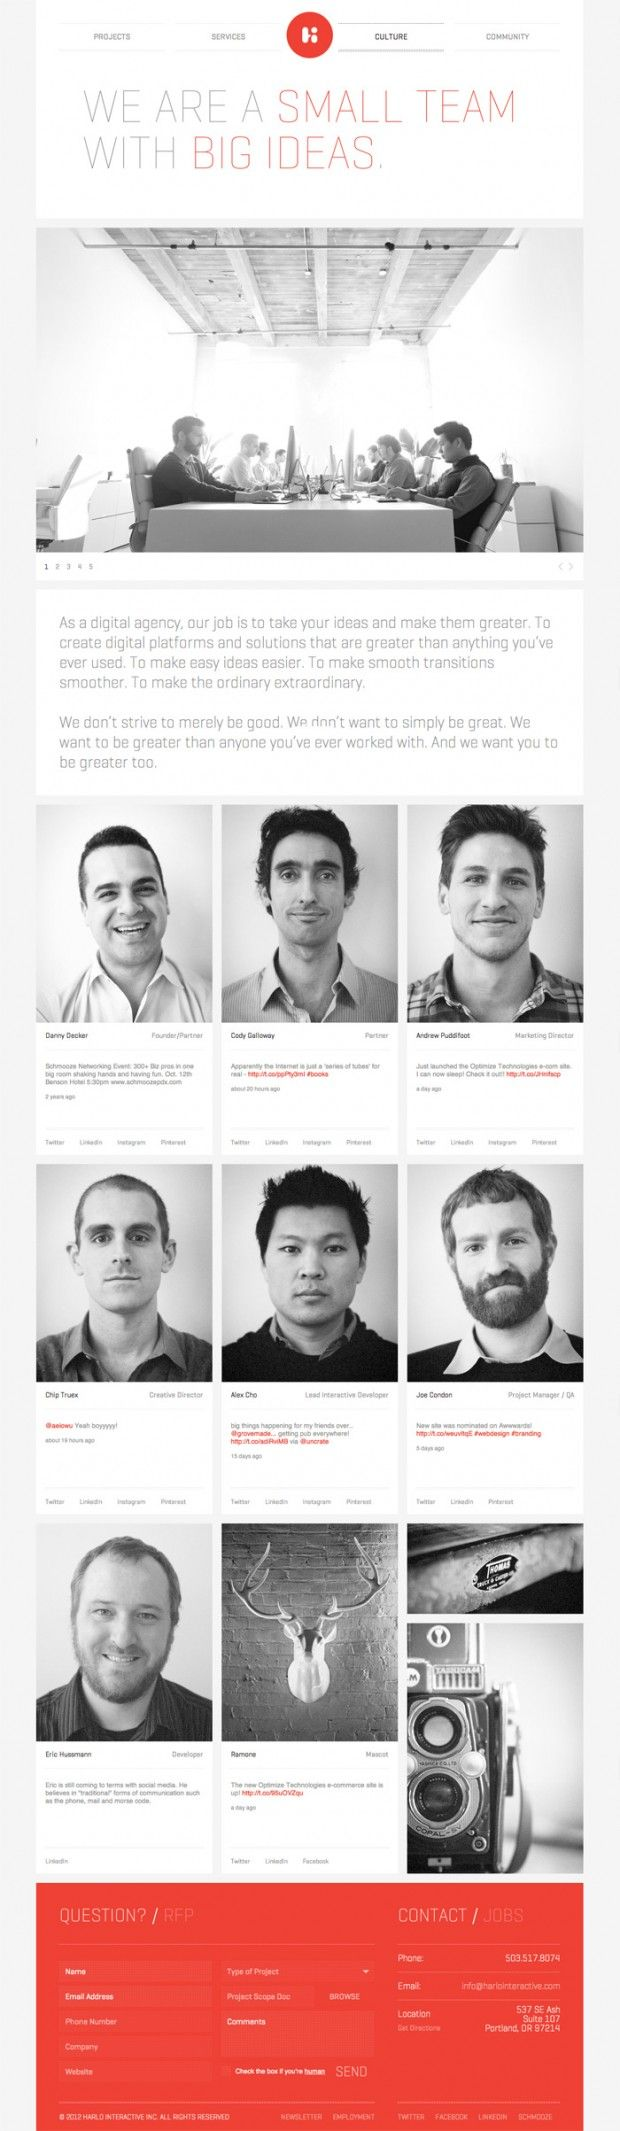 Meet-Our-Team-of-Professionals-Specializing-in-Interactive-Design-&-Development